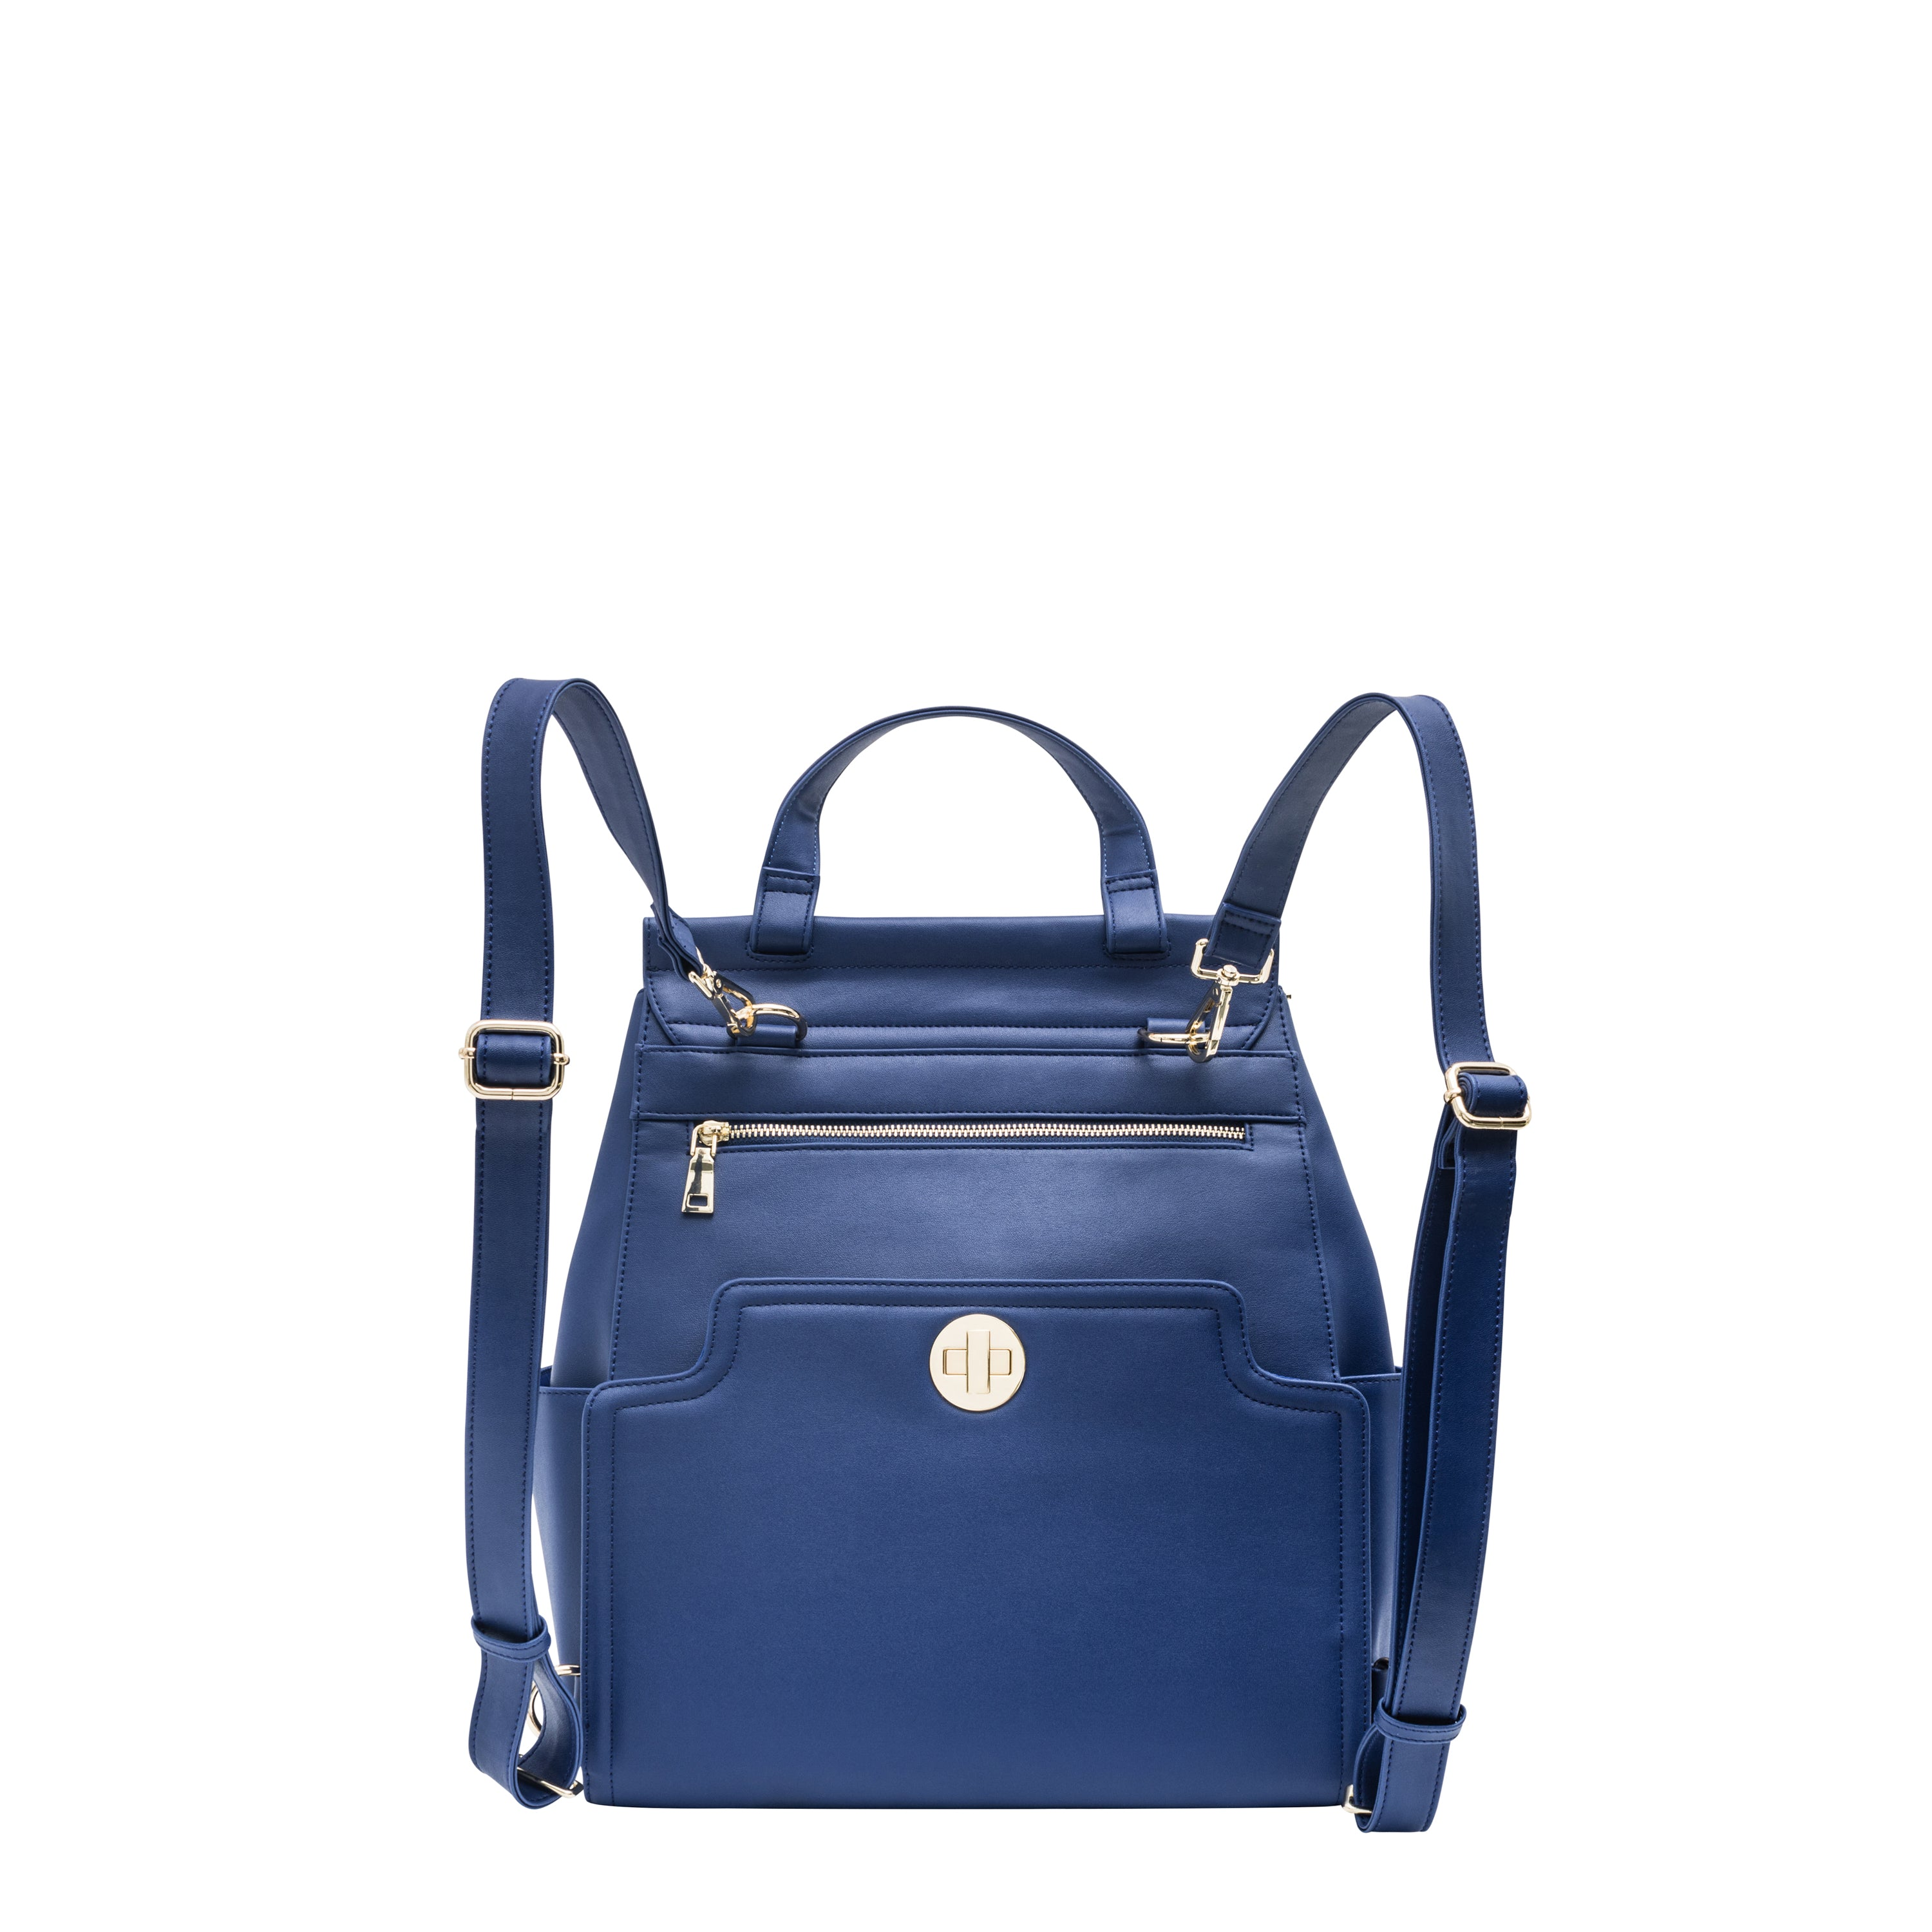 EVA Backpack has the style of a luxury designer purse with the functionality of a diaper bag,